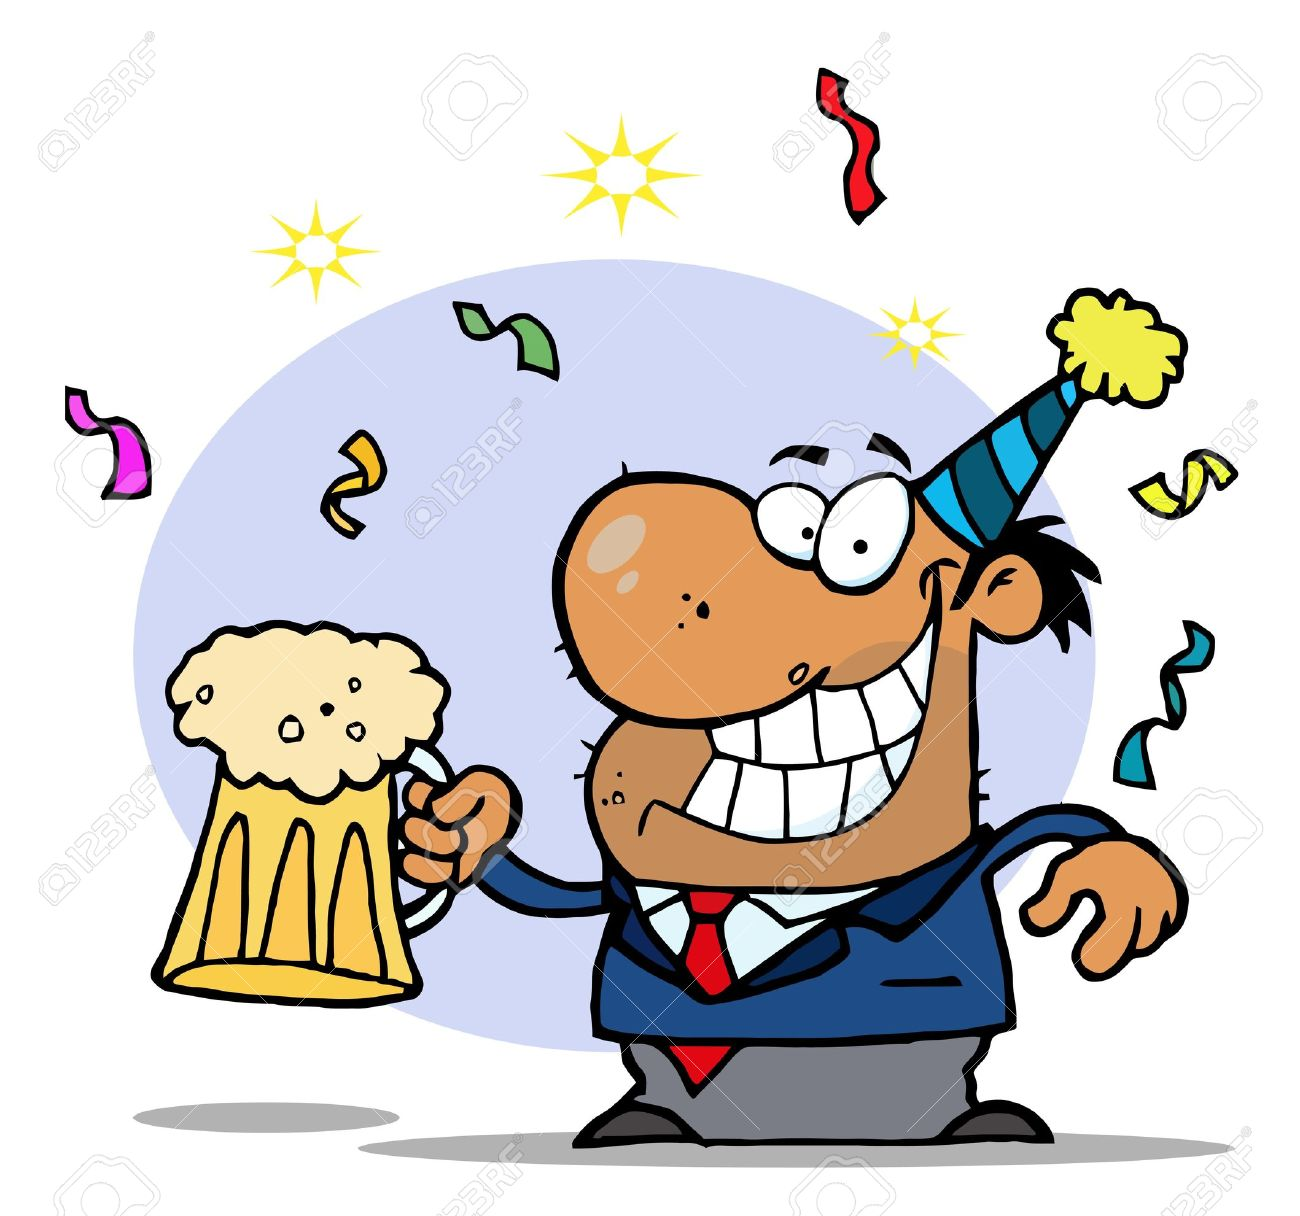 Men holding the word party concept 3d illustration stock photo - Drunk Cartoon Drunk New Years Party Man Holding Beer Illustration